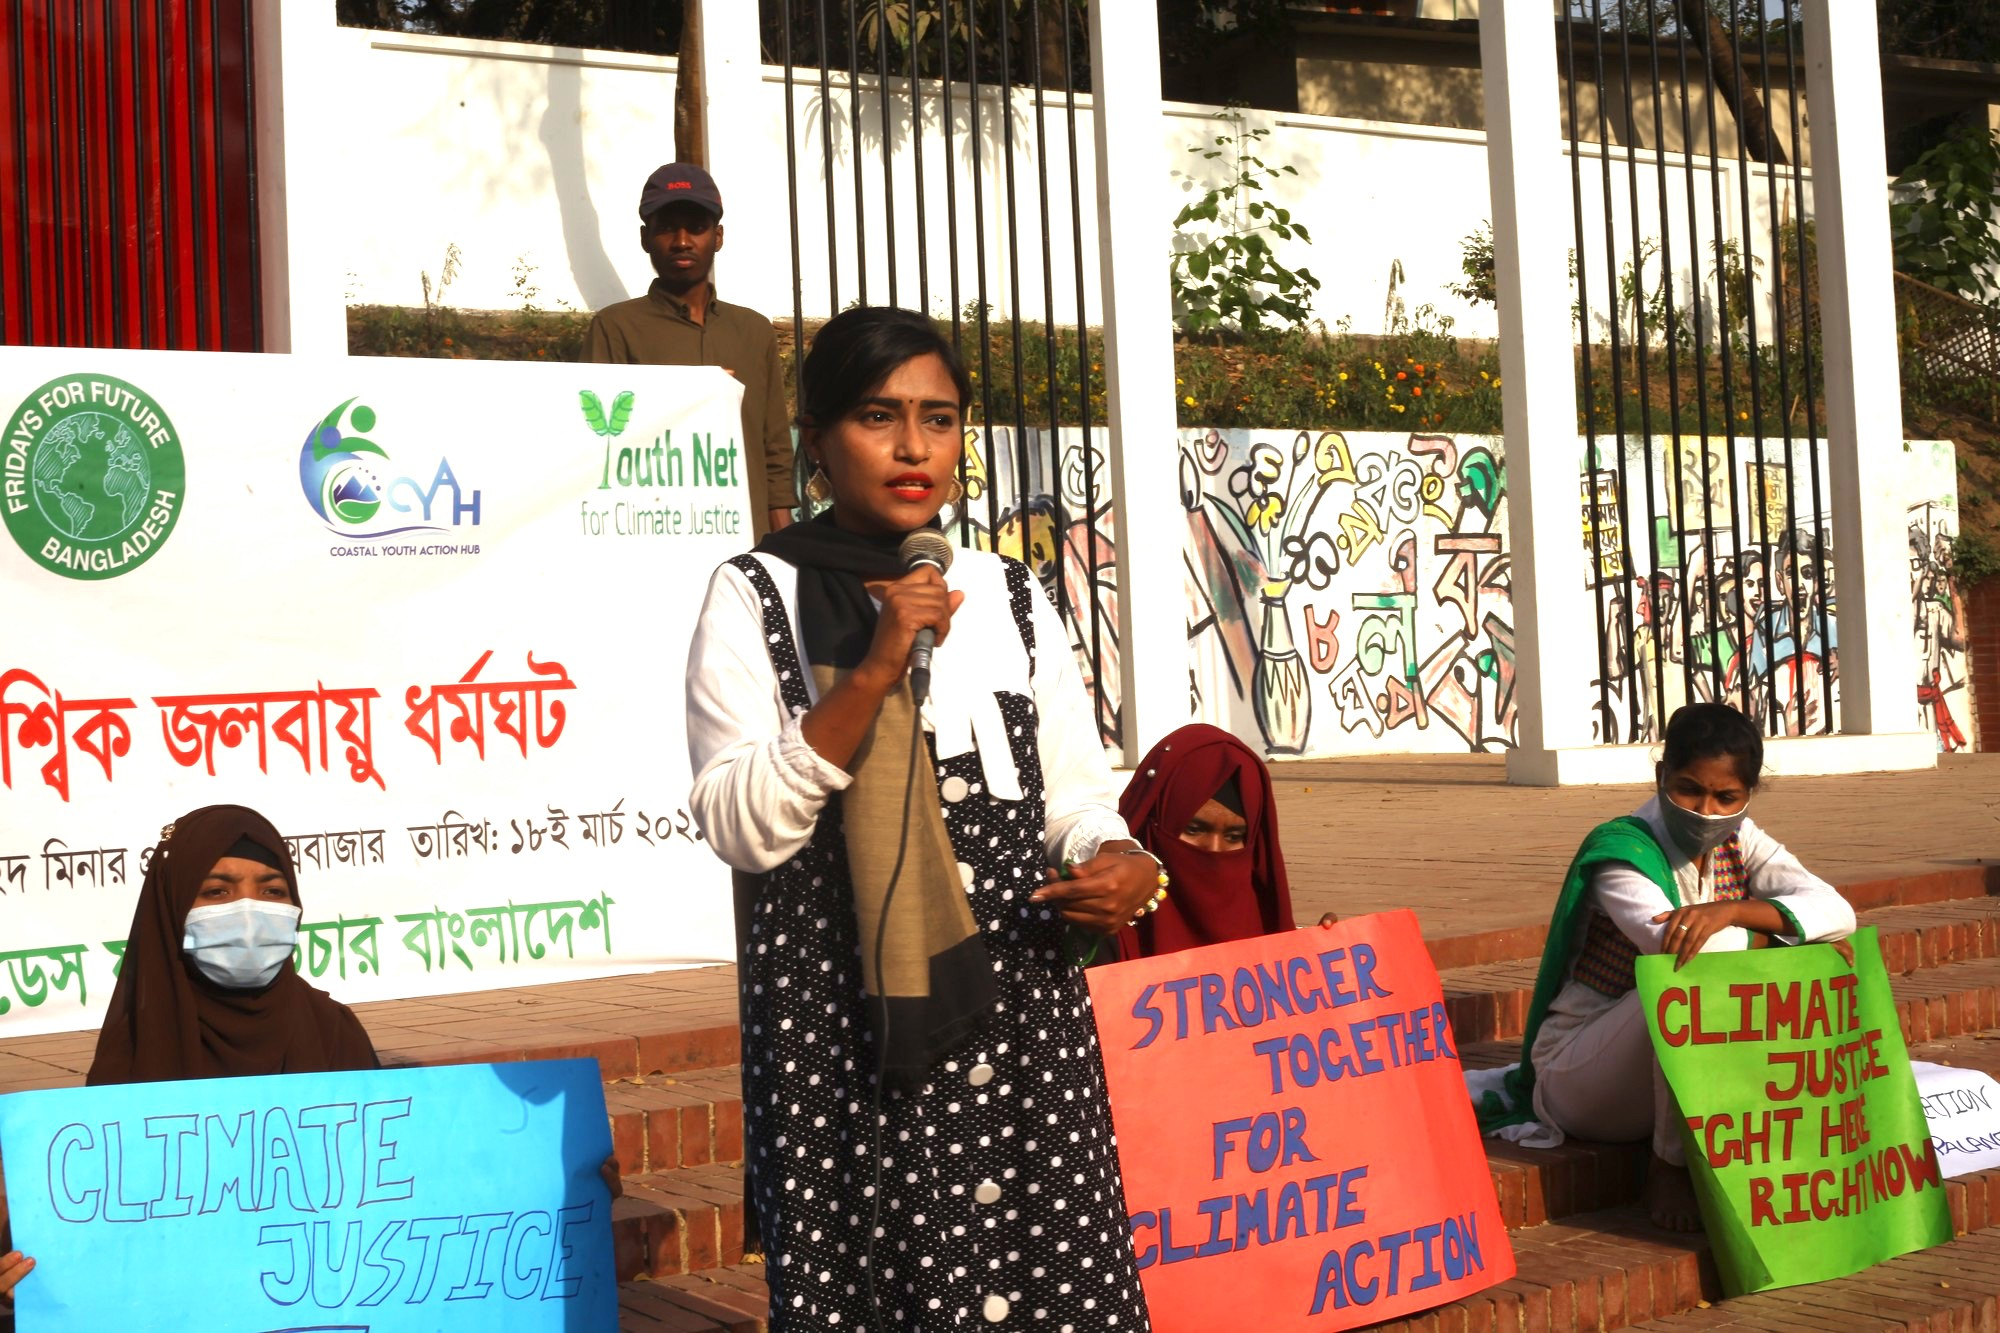 A woman holds a microphone at a climate justice event in Bangladesh.